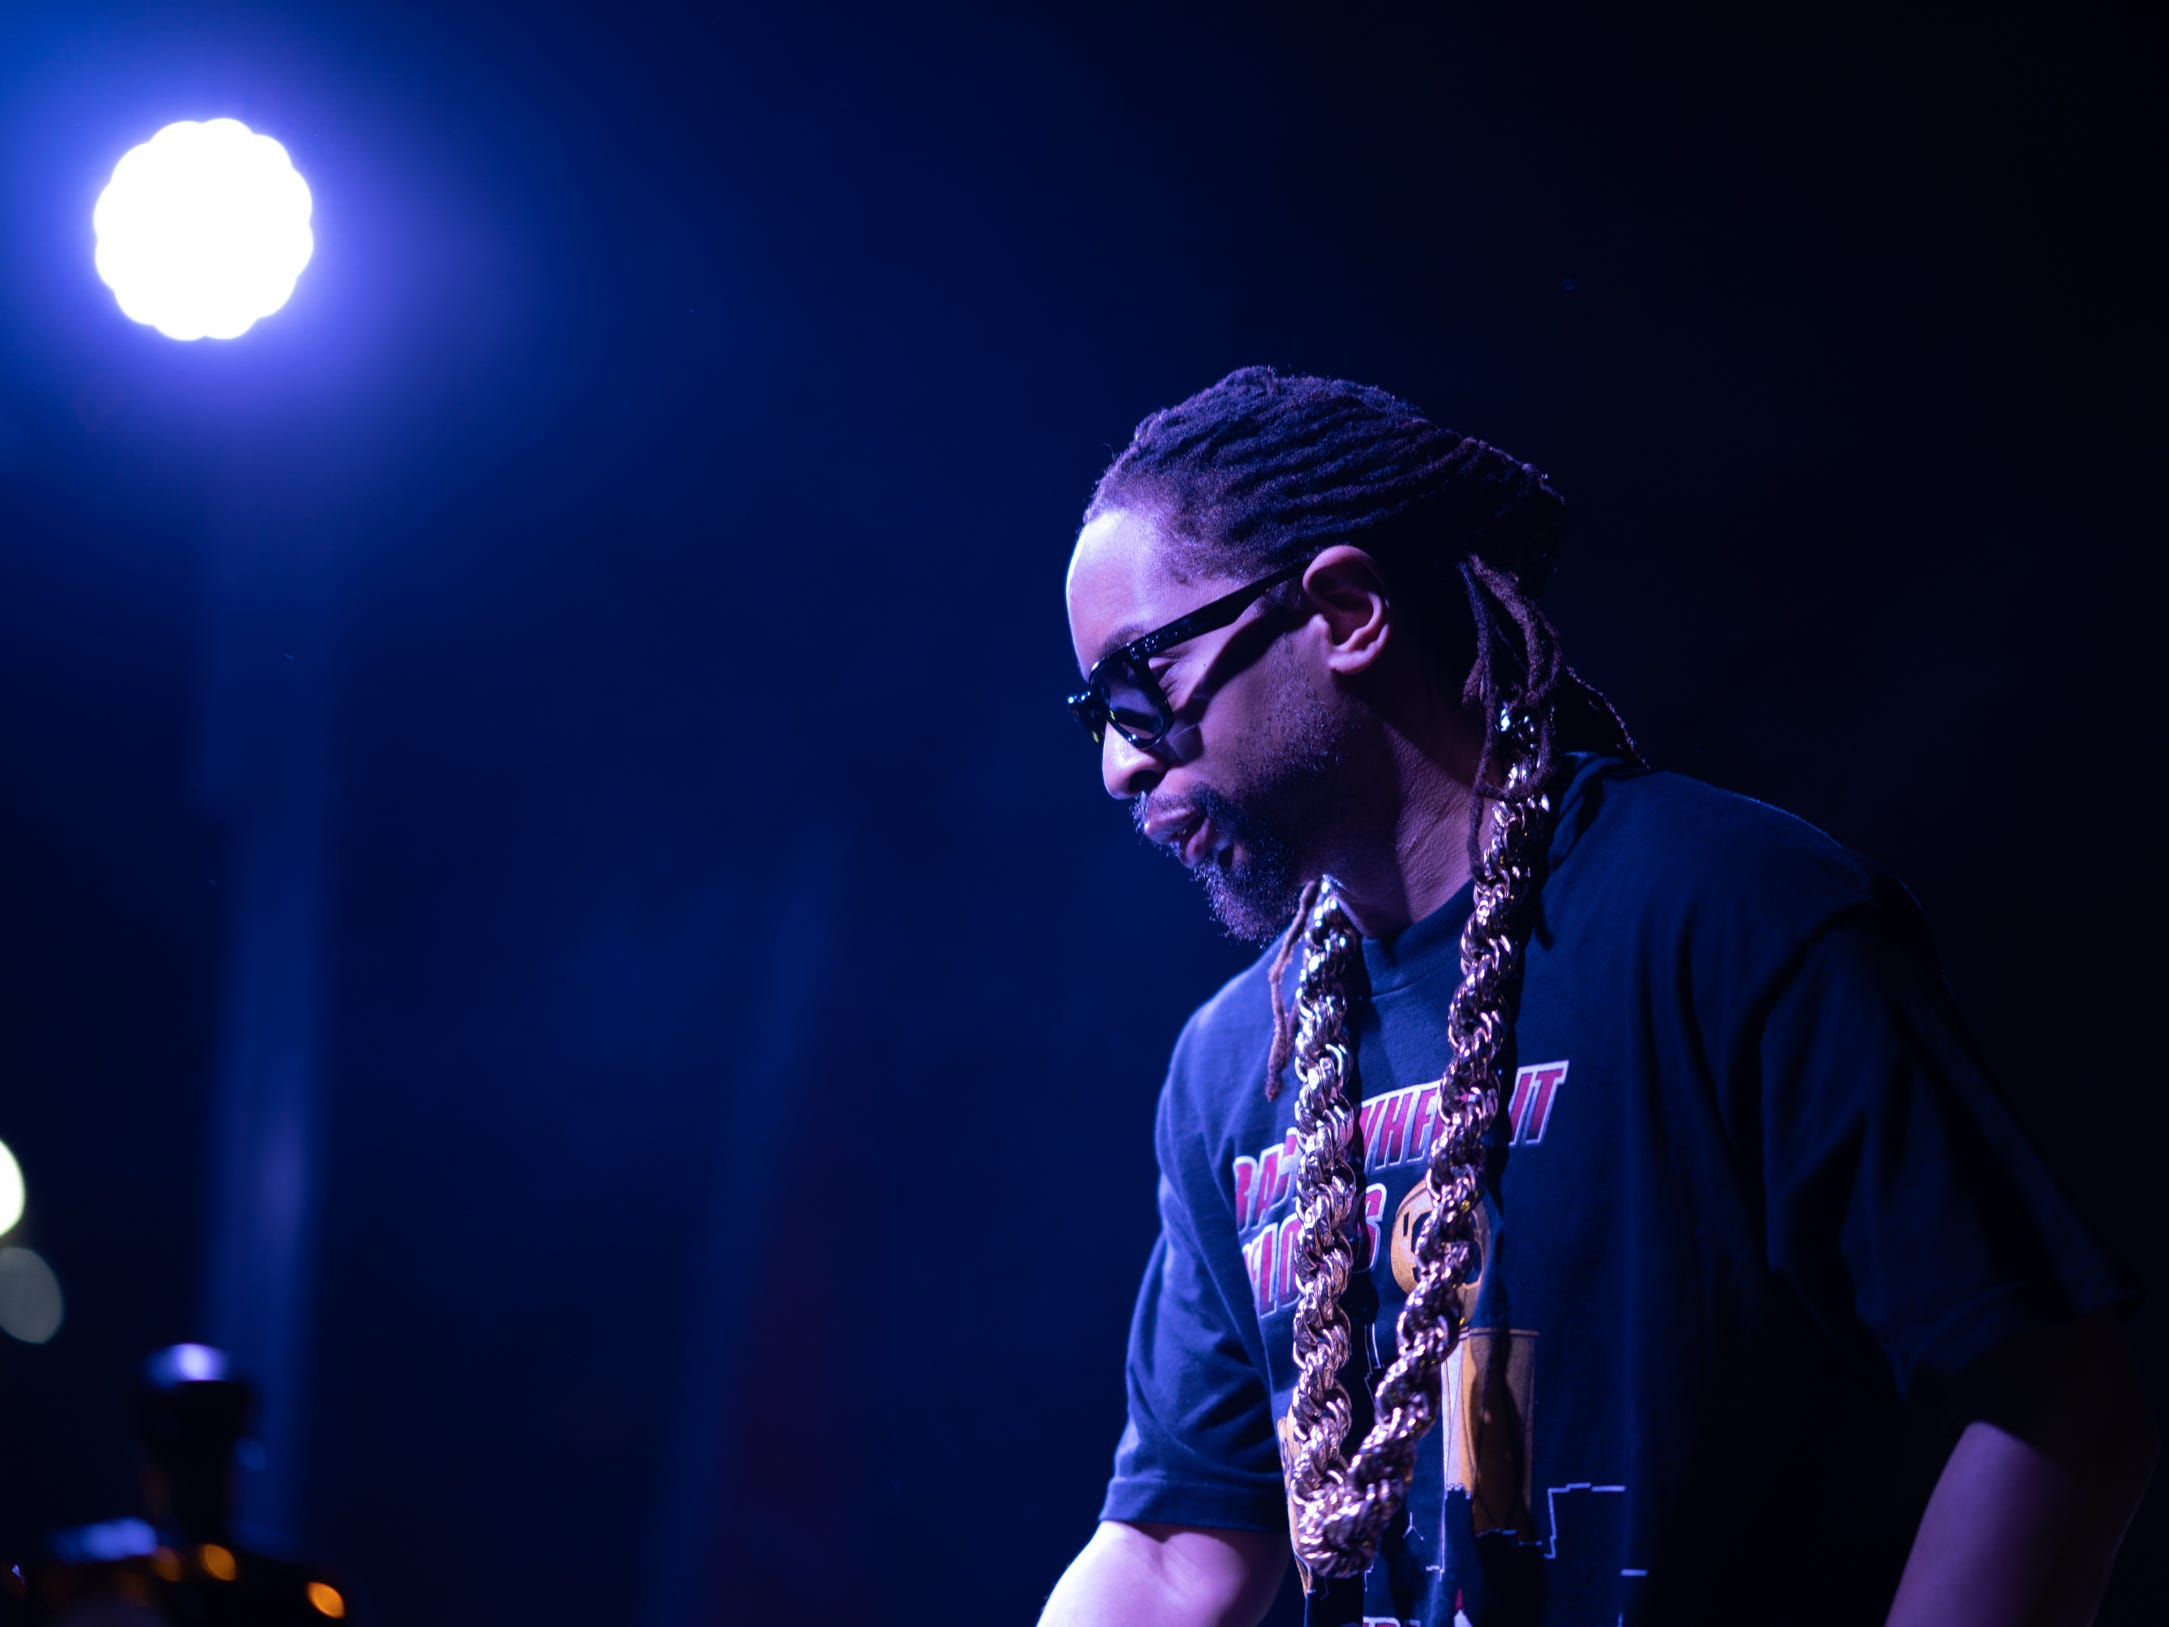 Lil Jon performs at the Beach Bar in Tumon during the neon-themed beach festival on May 11.